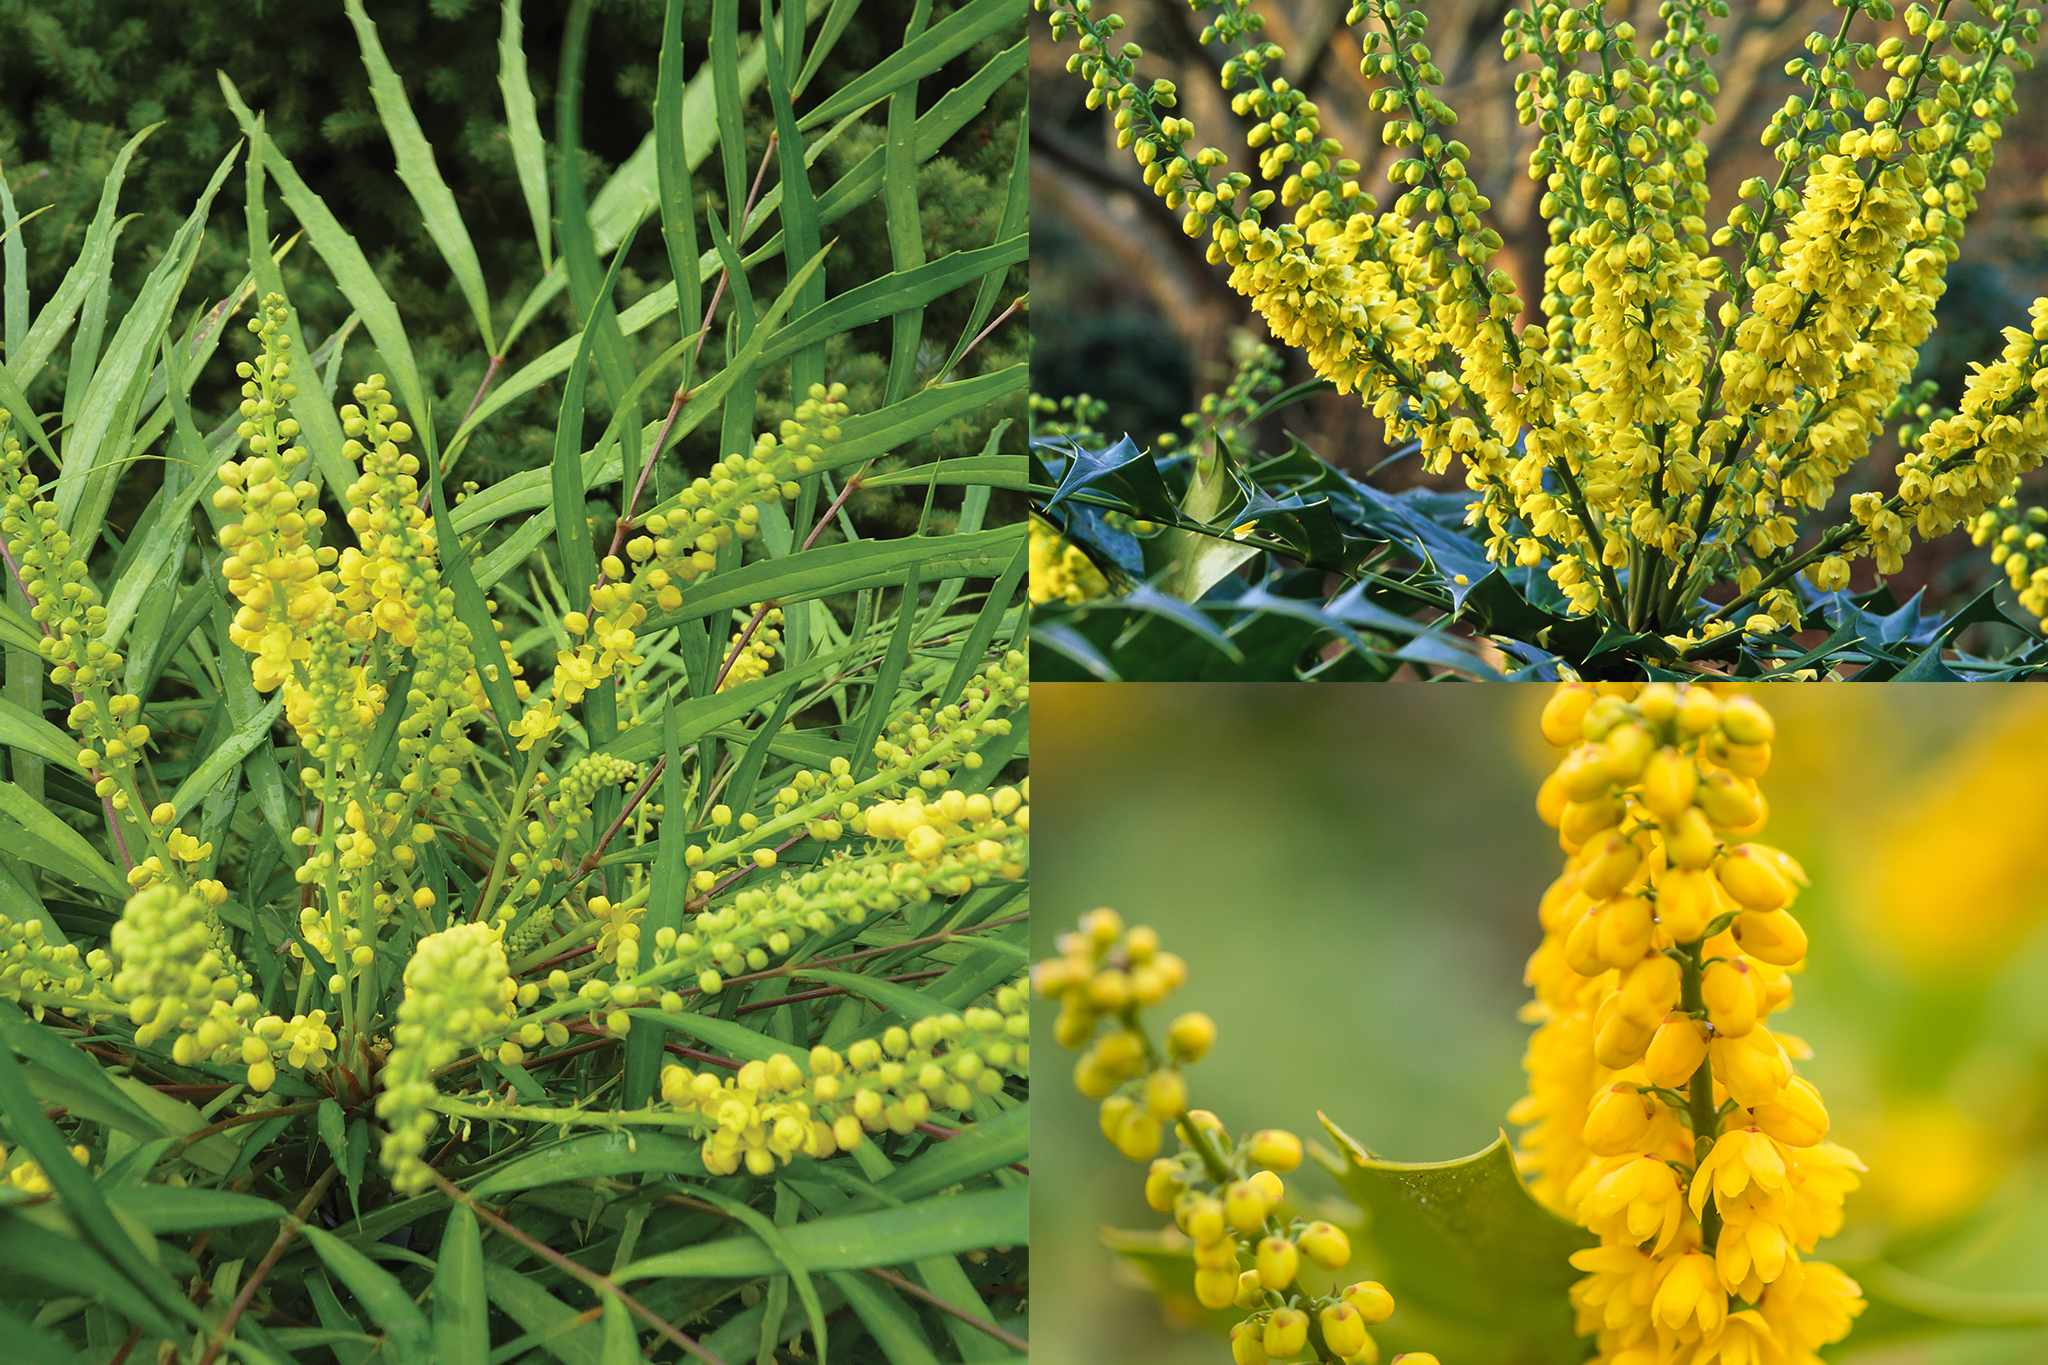 tandm-mahonias-save-10-2048-1365